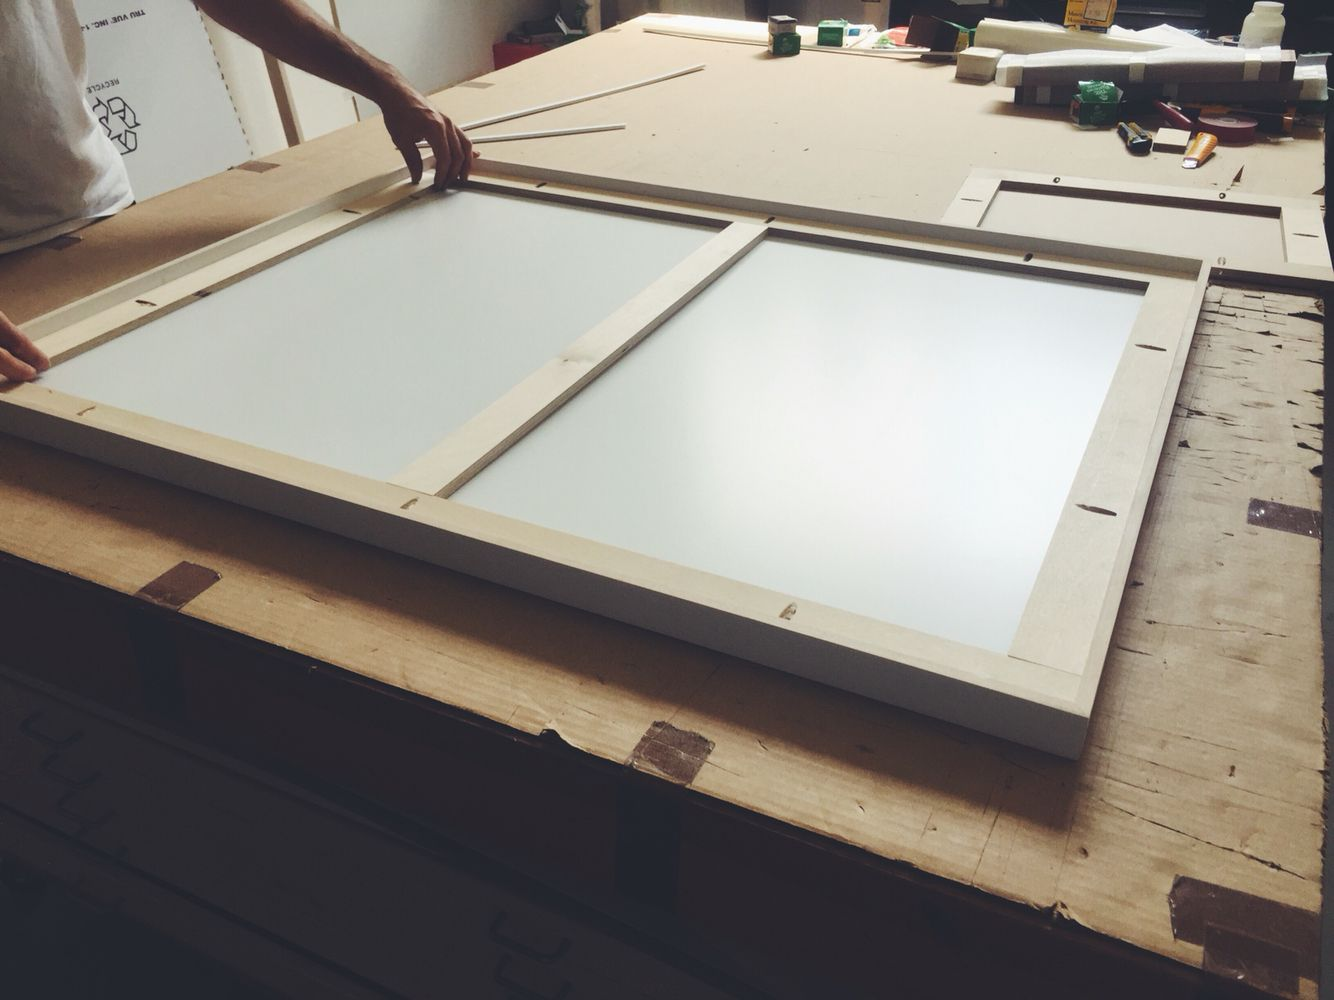 Fully custom framing from Fotofoam. Hand cut, assembled and painted ...